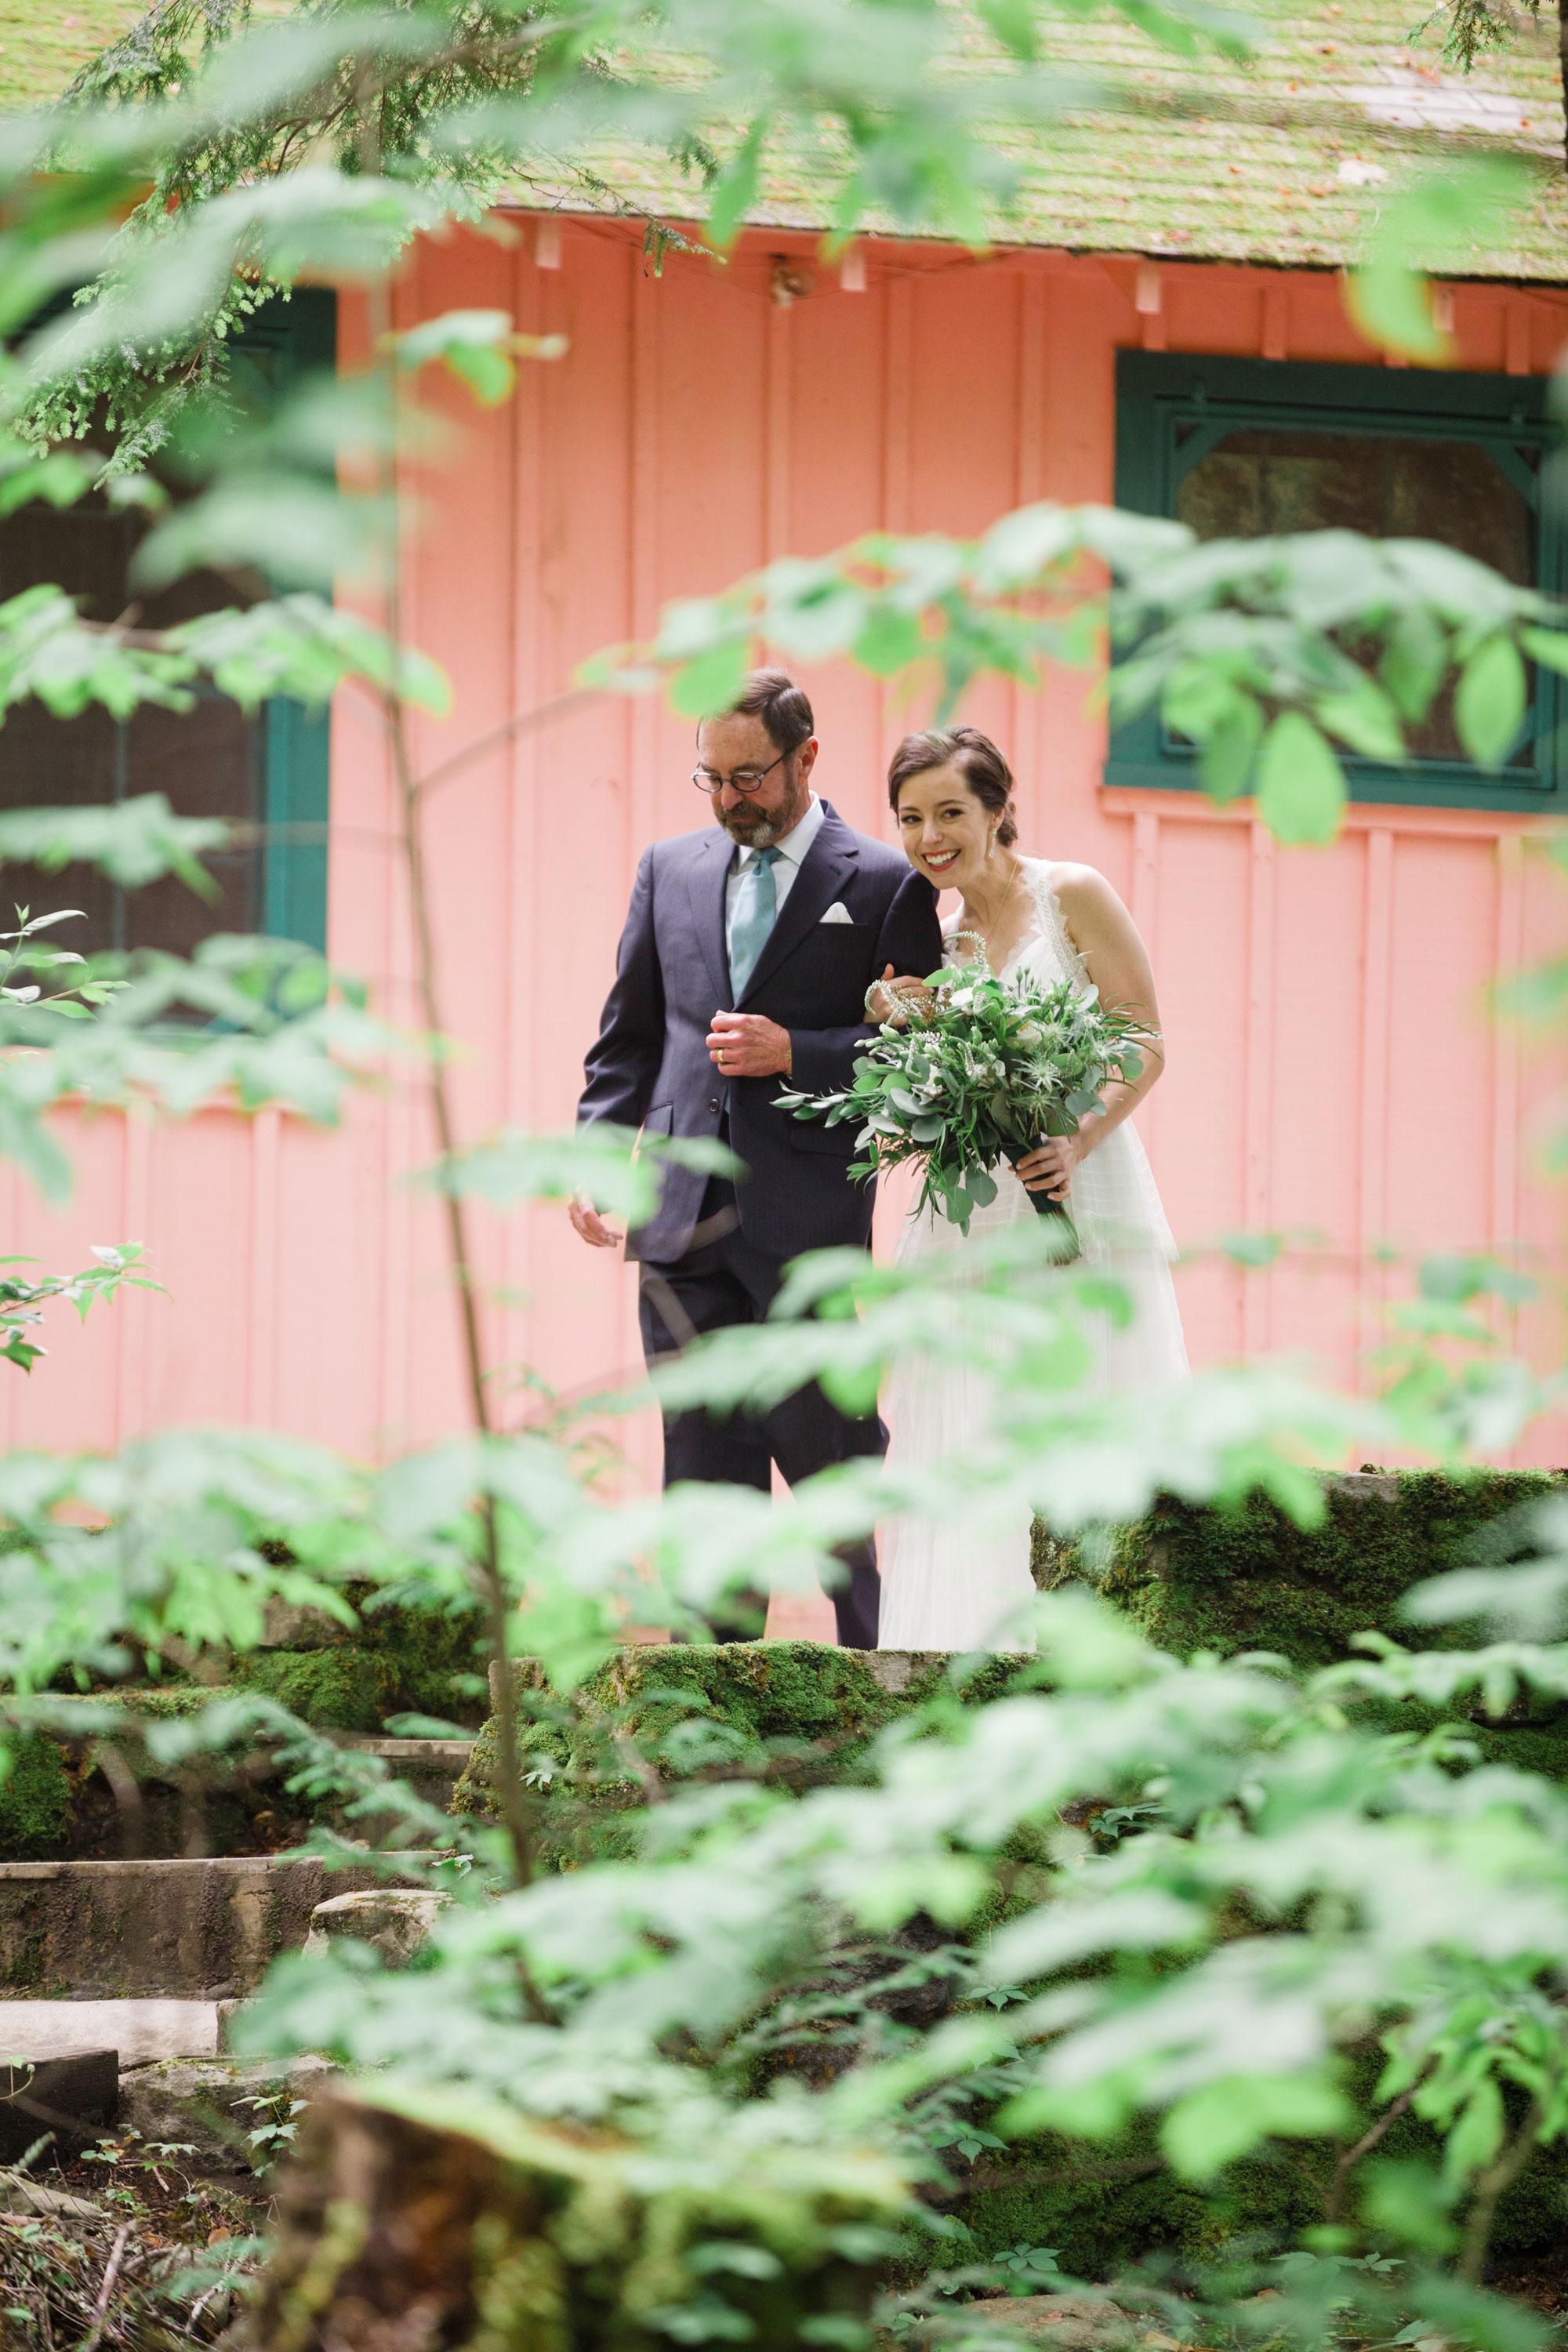 An Intimate Wedding In The Great Smoky Mountains National